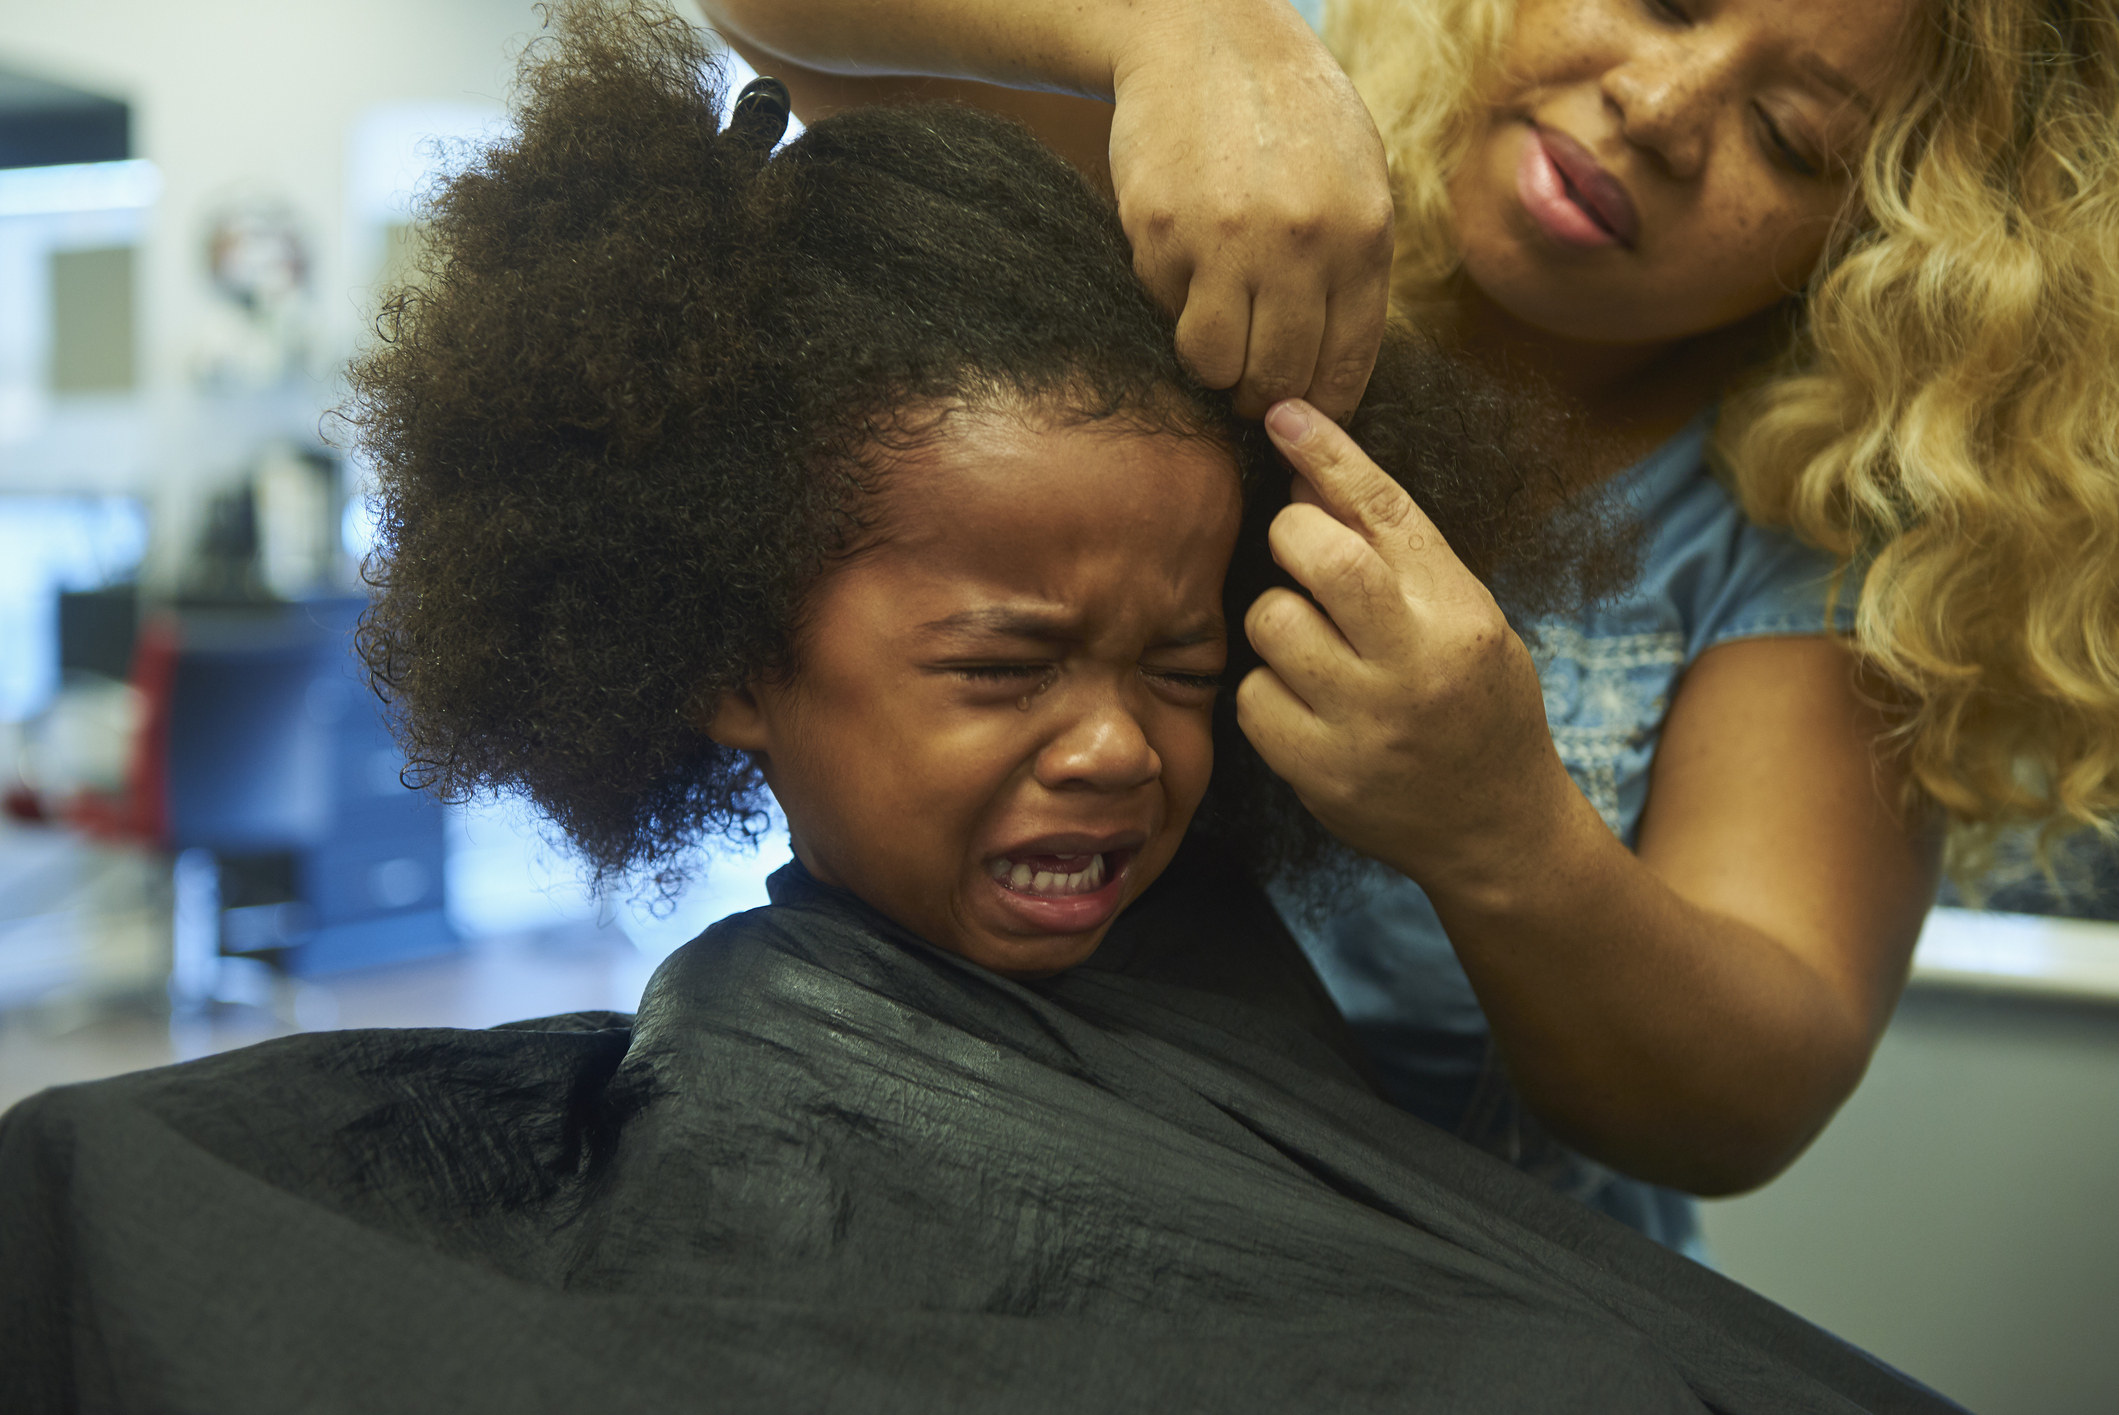 A child crying during their haircut